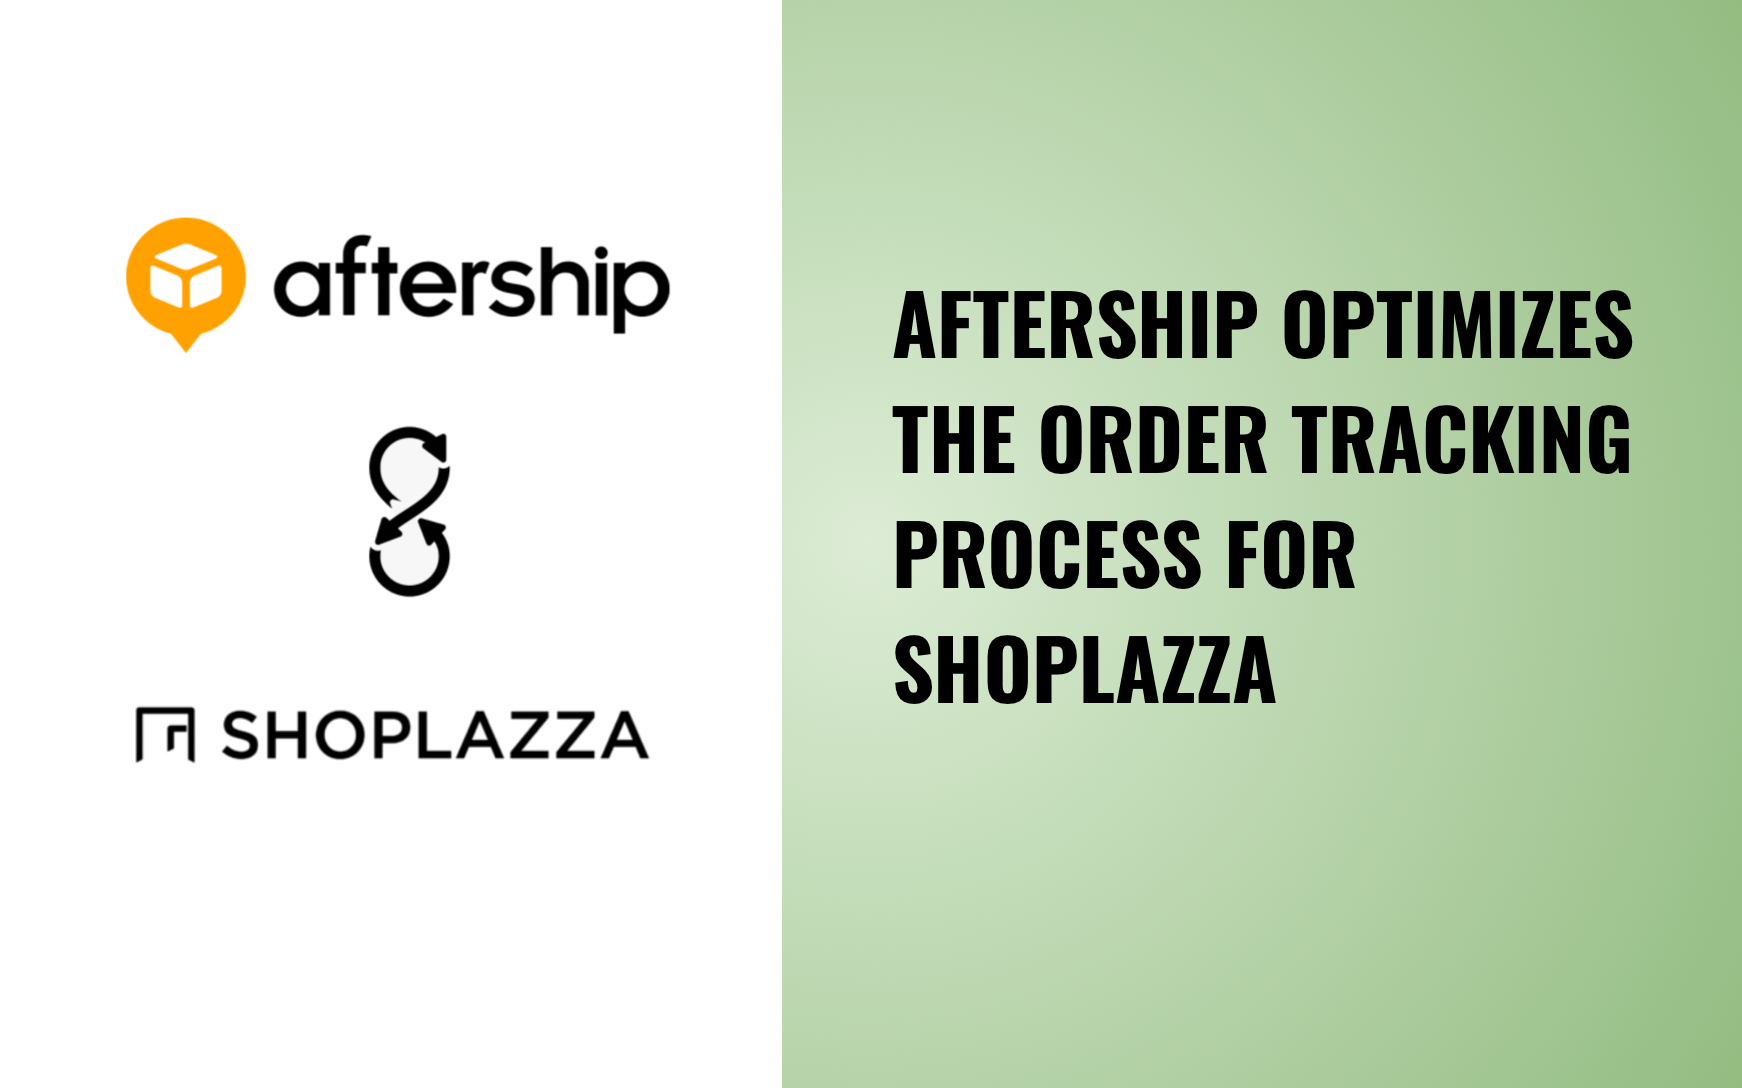 How is AfterShip Optimizing the Order Tracking Process for Shoplazza's Merchants & Their Customers?